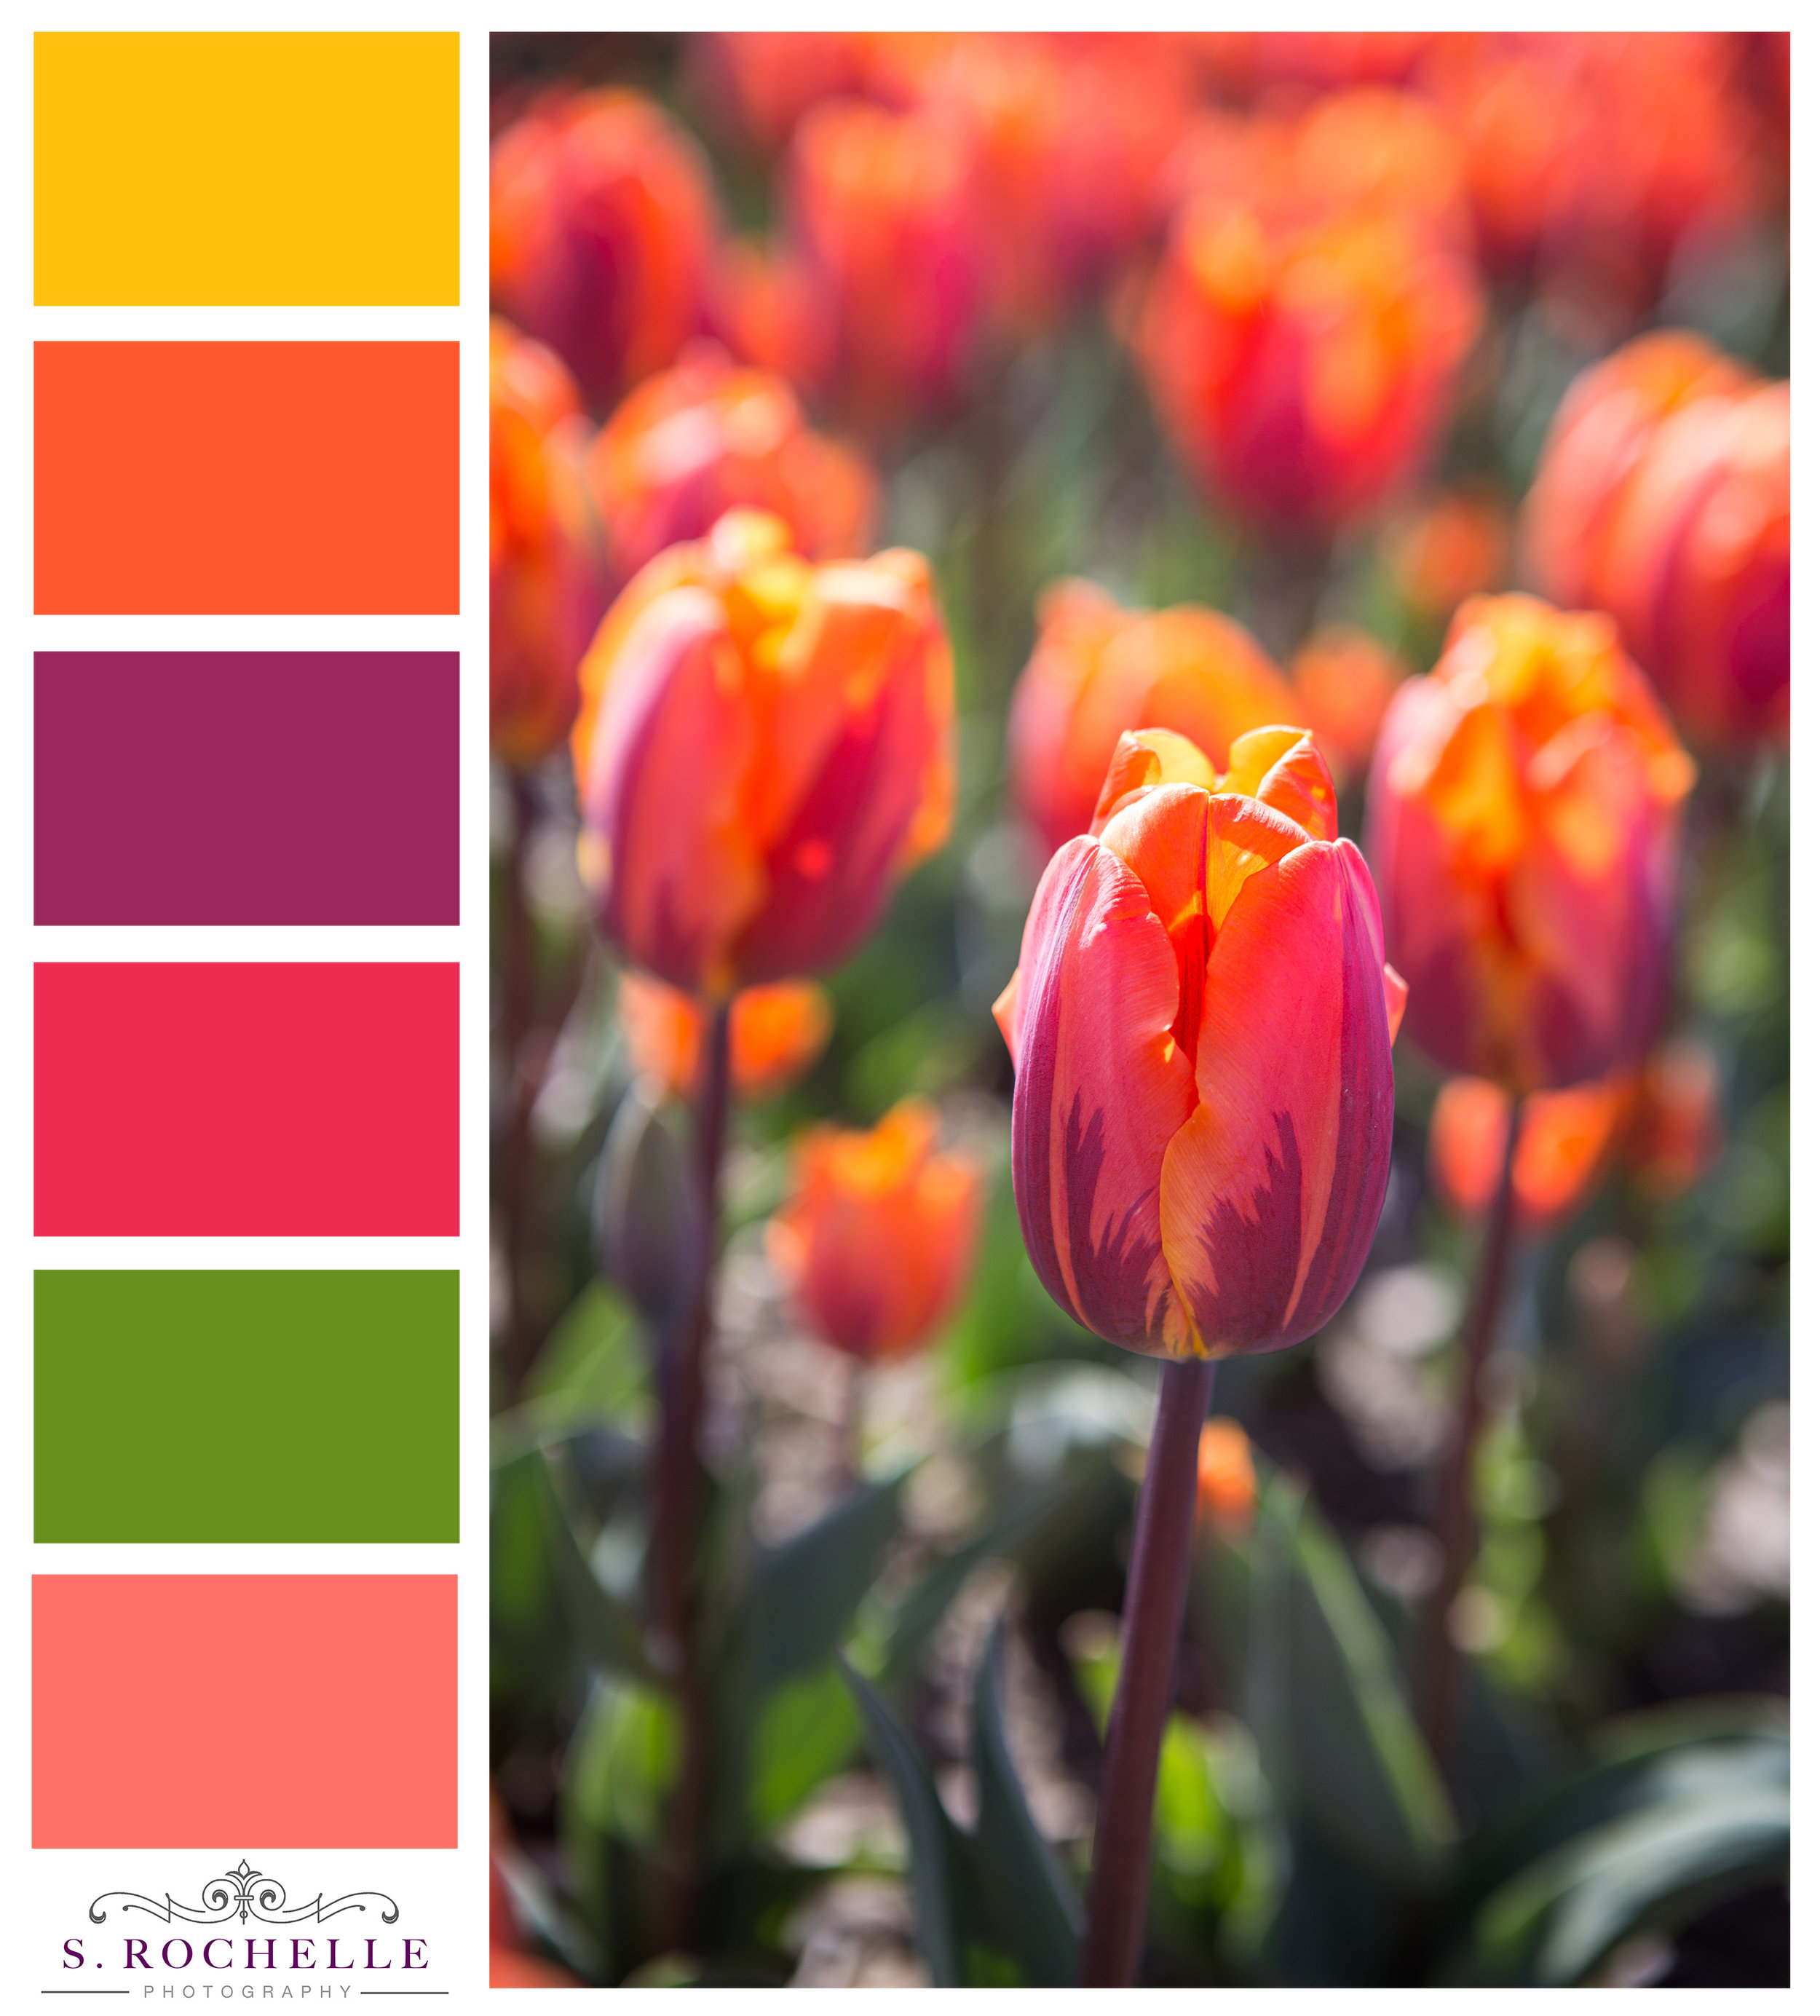 Princess_Irene_Tulips_S_Rochelle_Photography_20180422_IMG_9830_ColorPalette.jpg